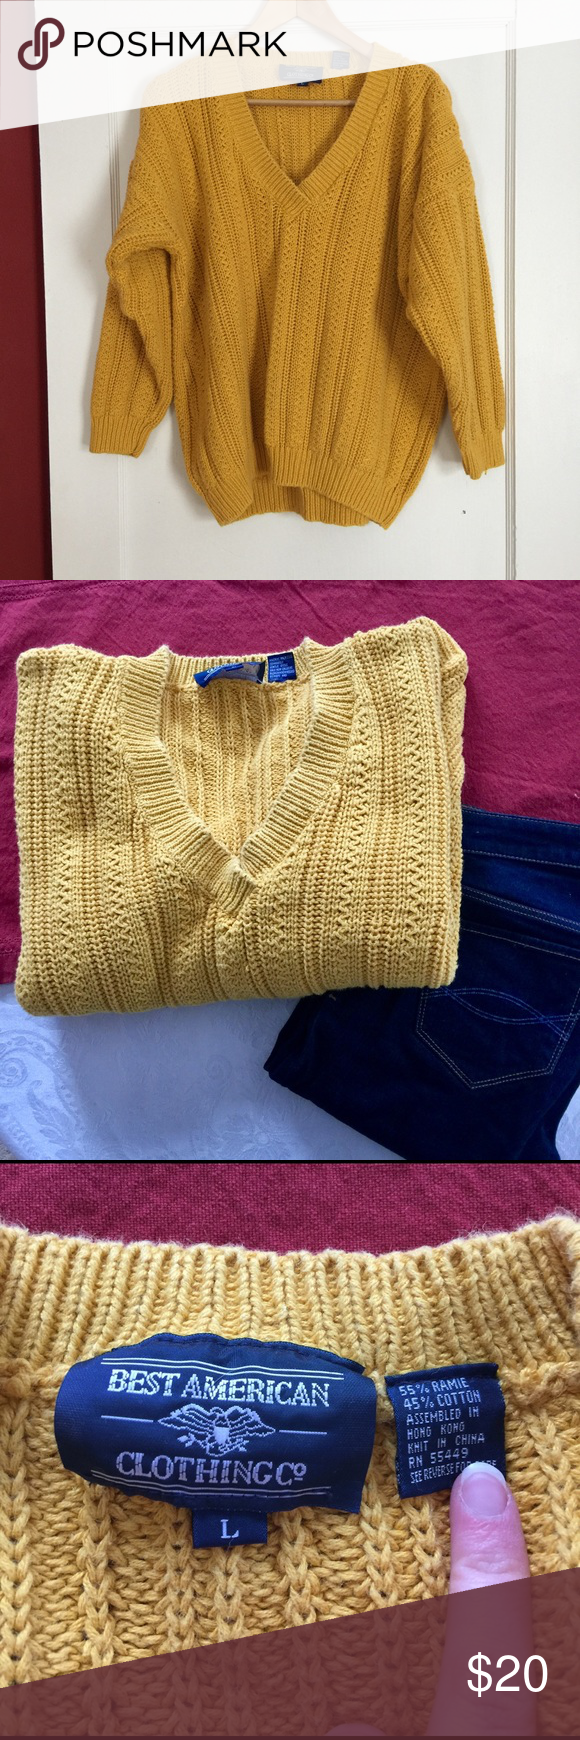 Vintage Yellow Gold Sweater Good vintage condition Vintage ...